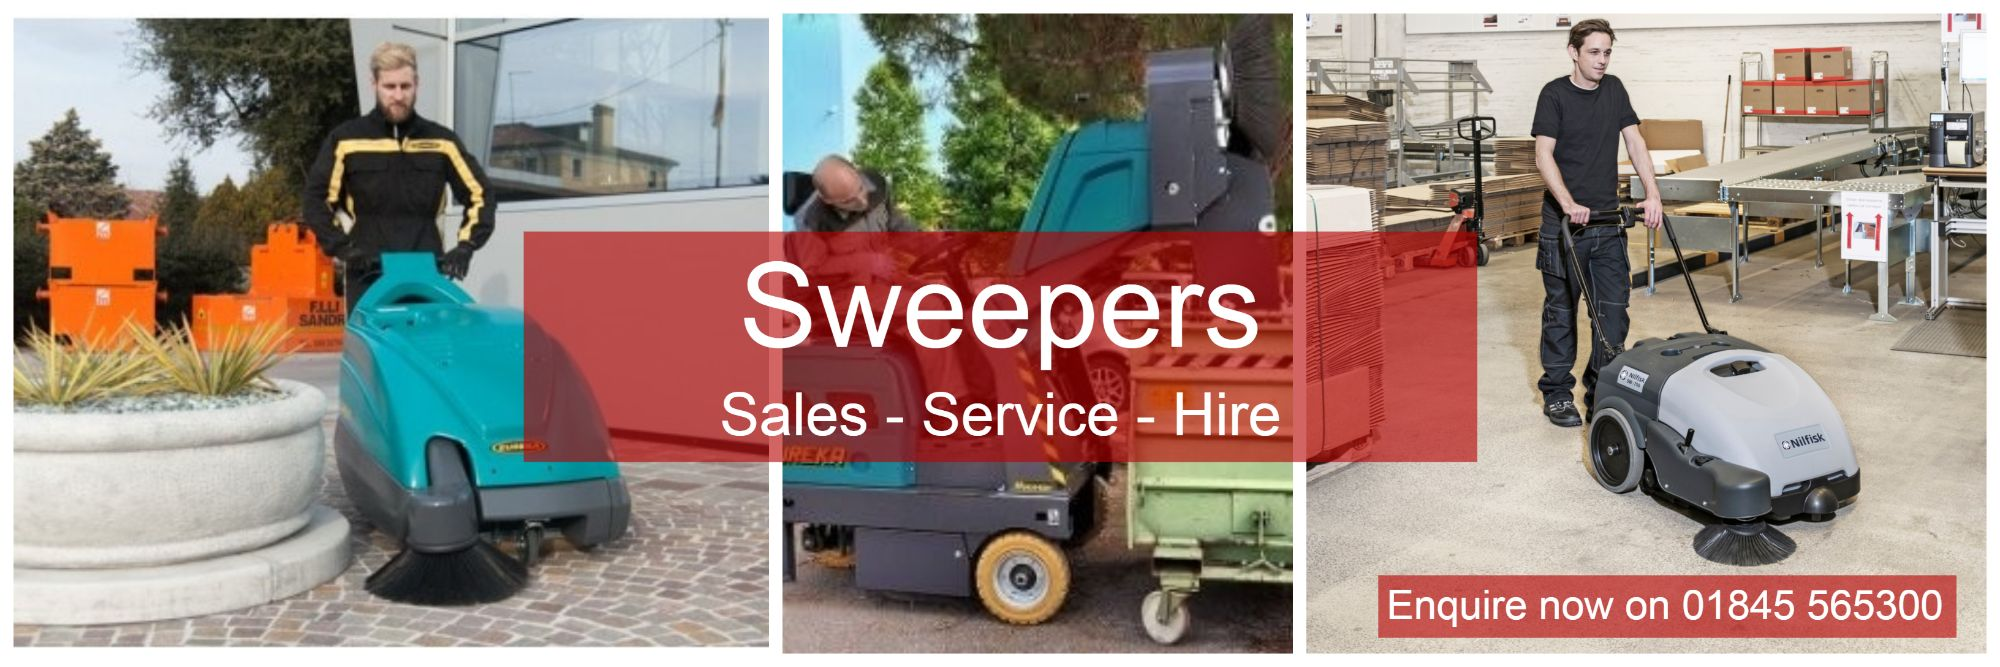 sweepers (1)